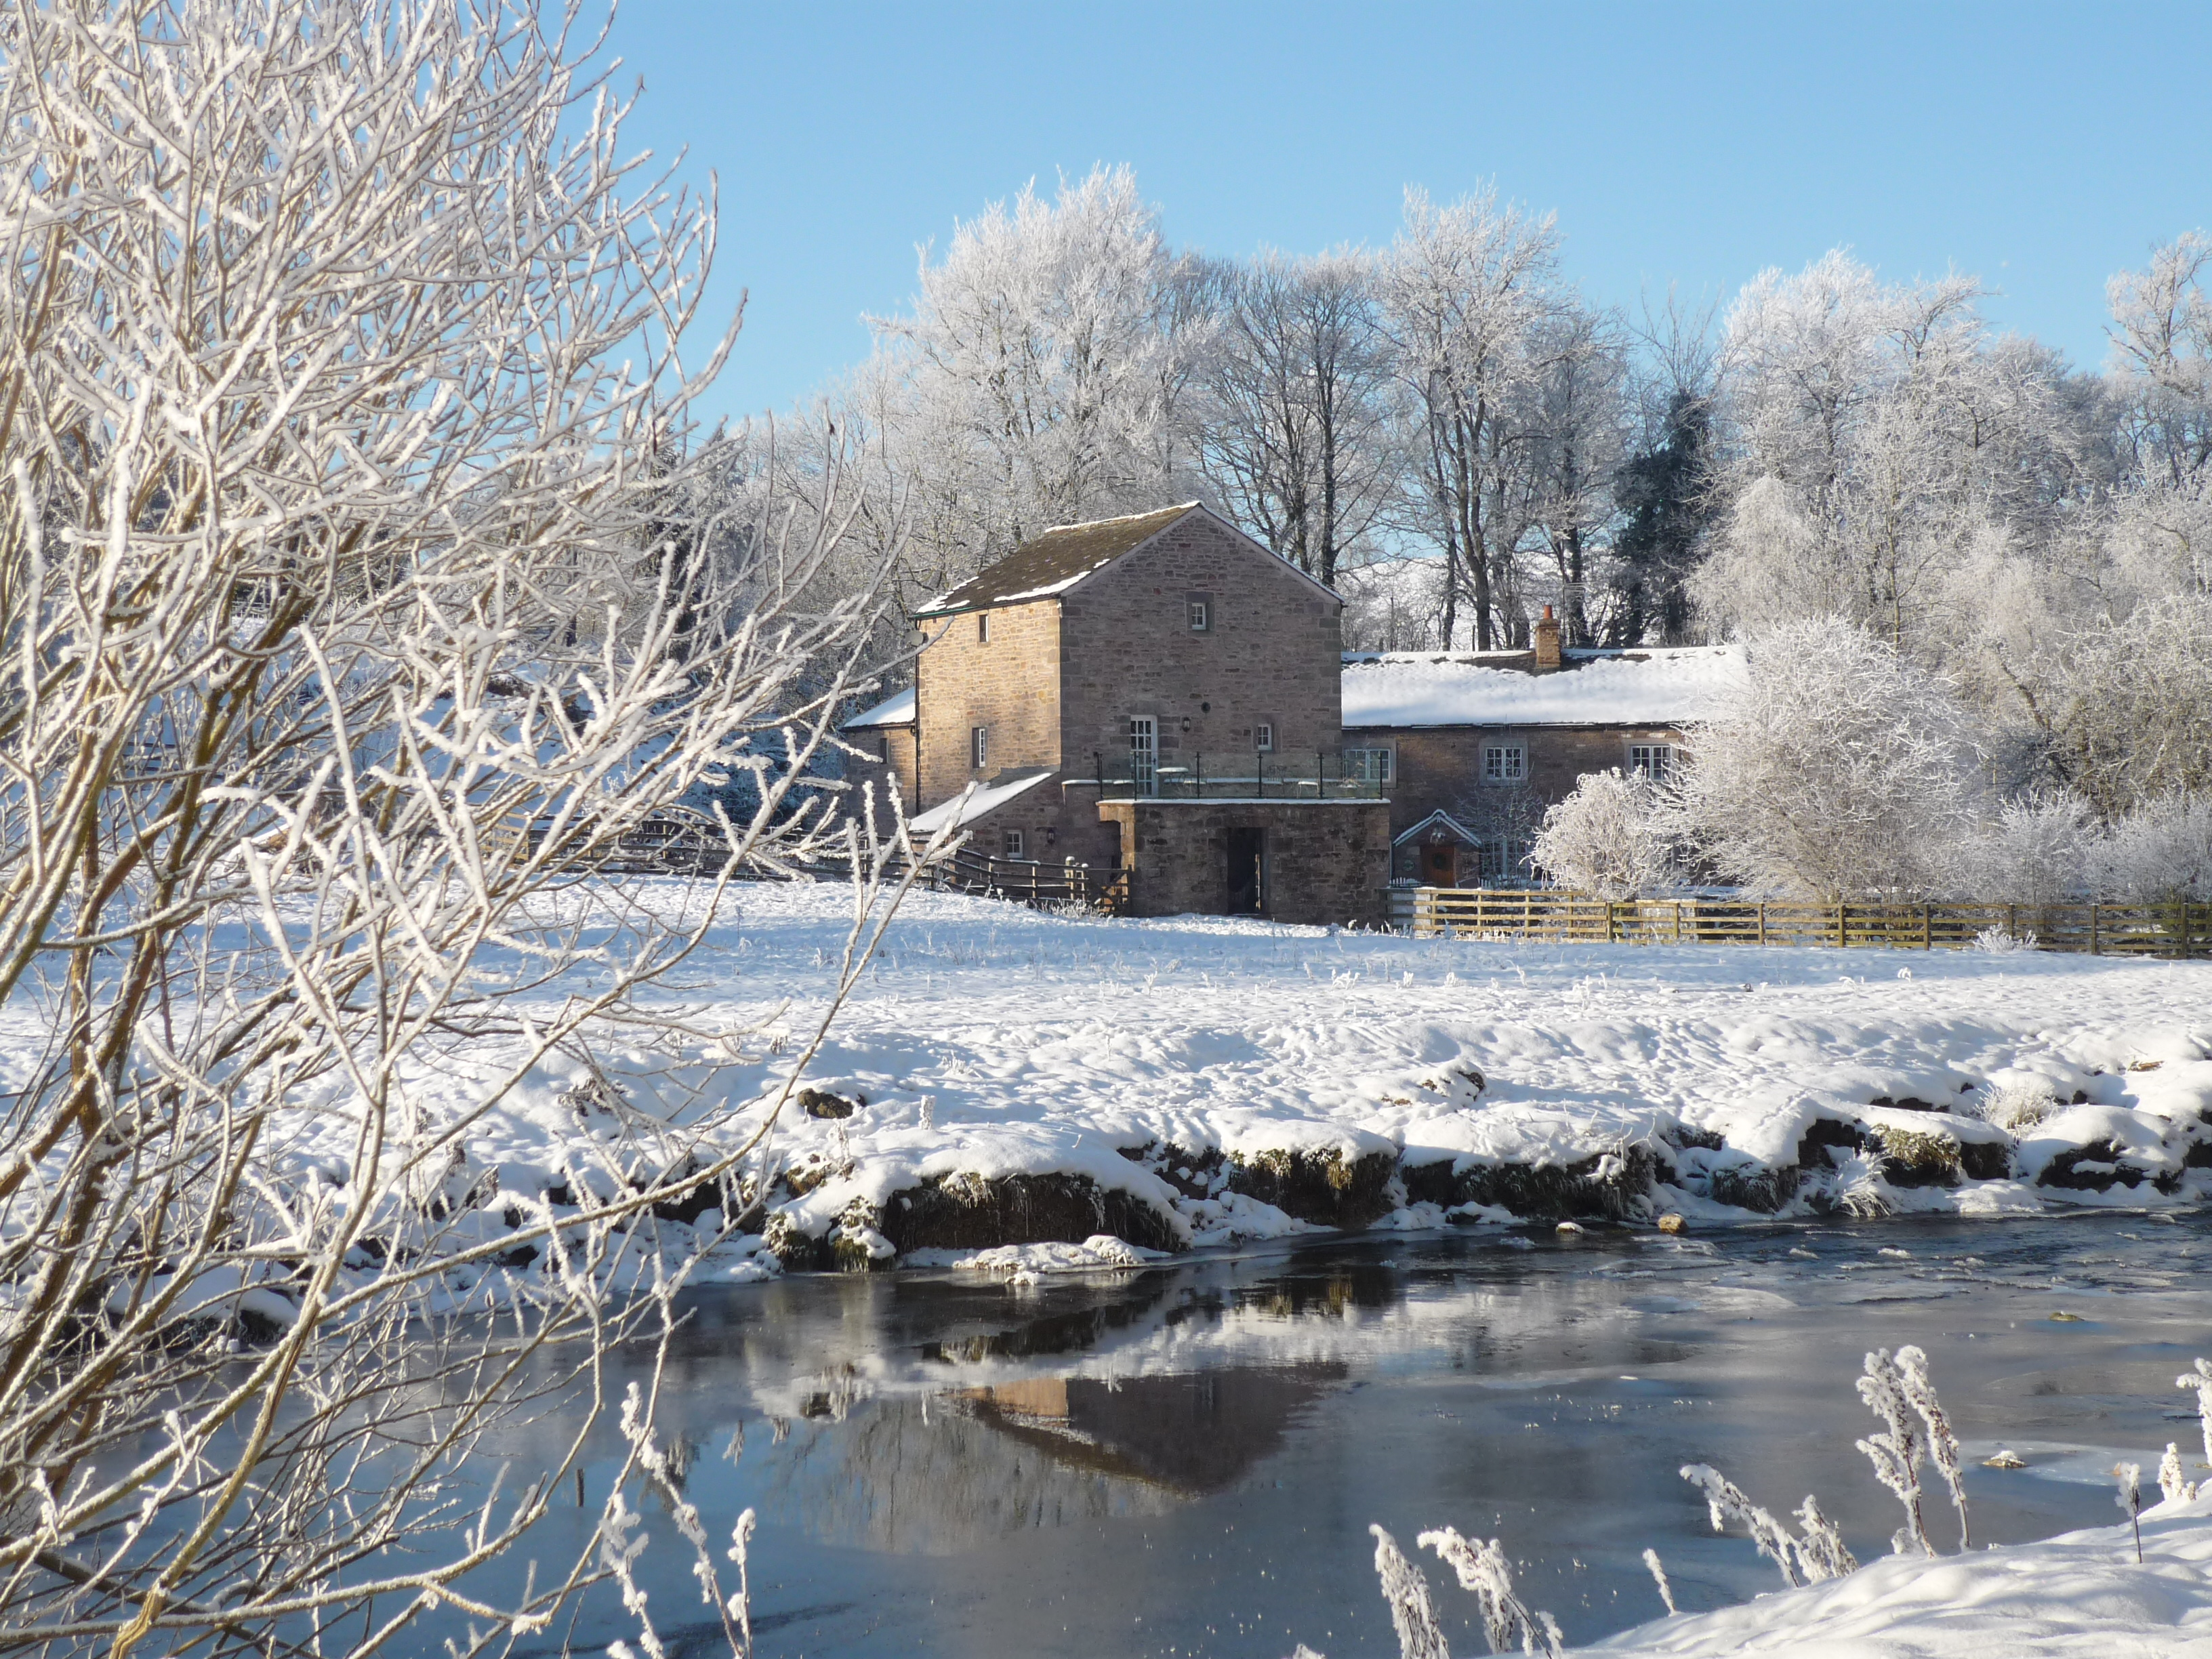 Holiday cottage in the snow by a lake